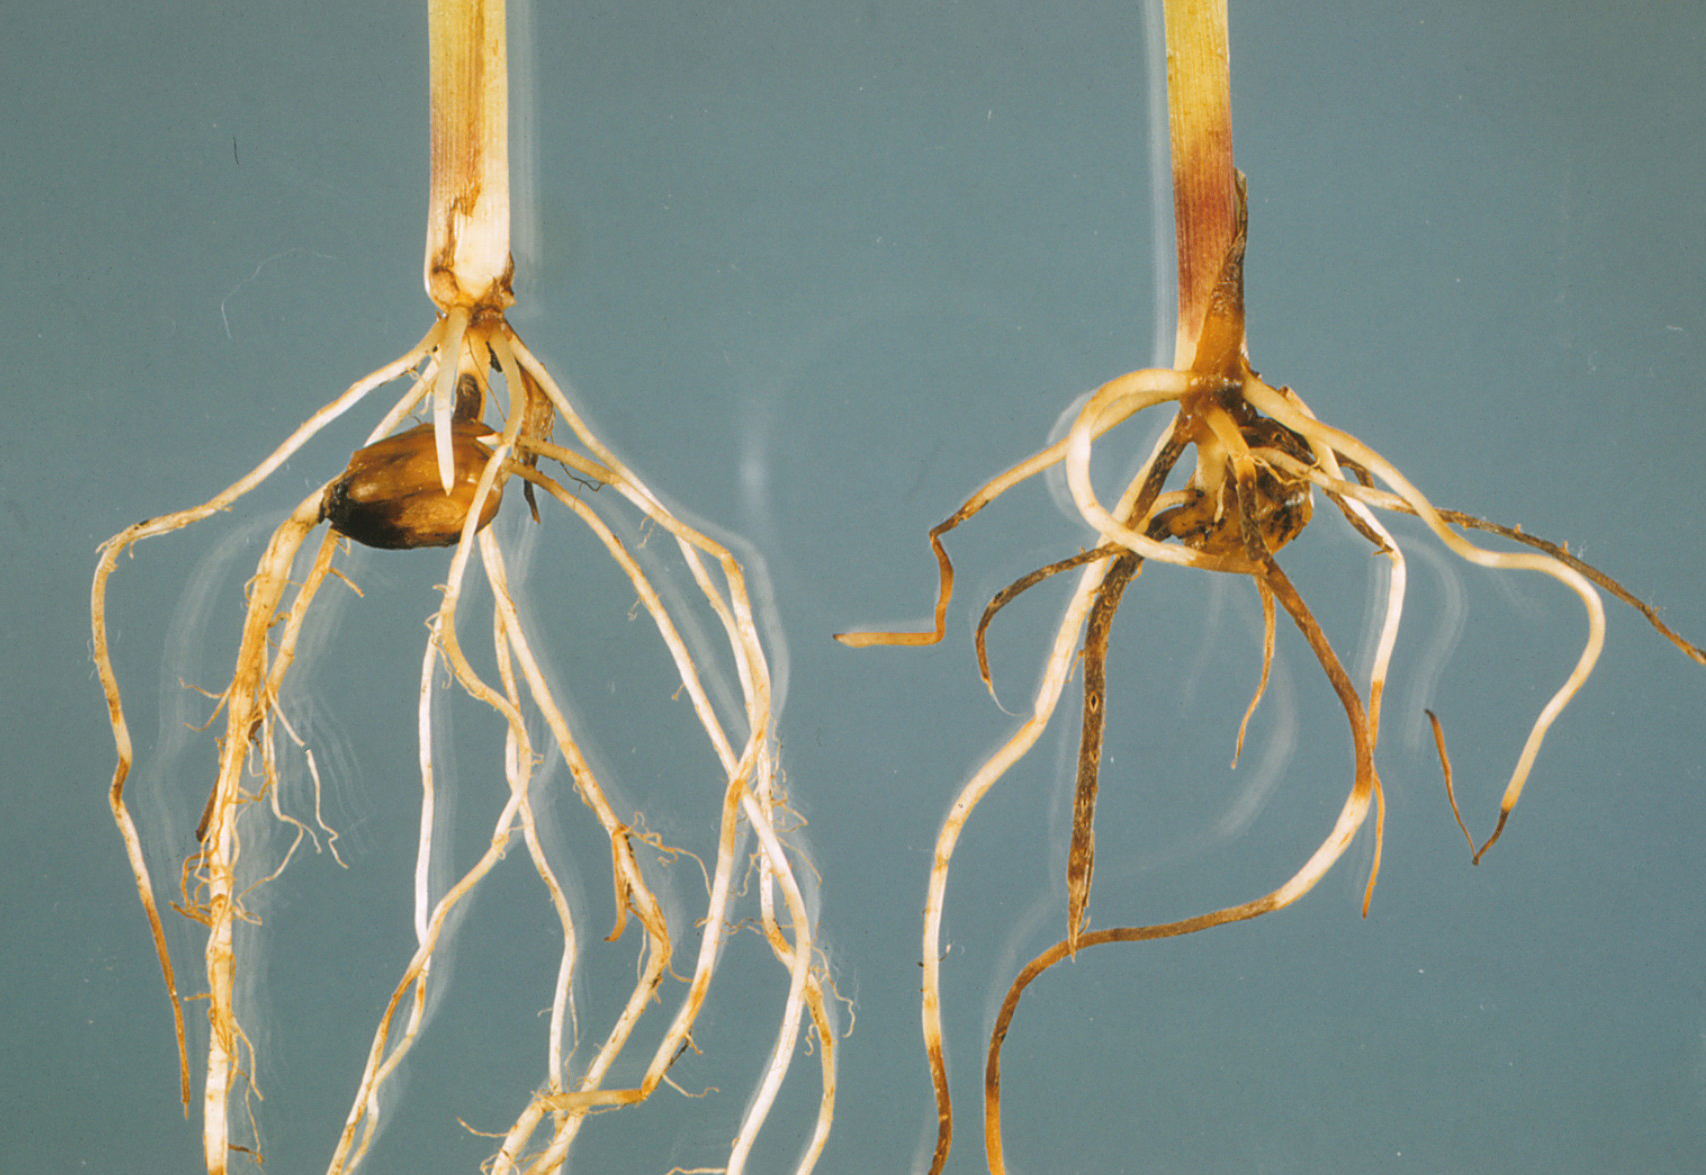 Rotted roots resulting from Pythium infection.